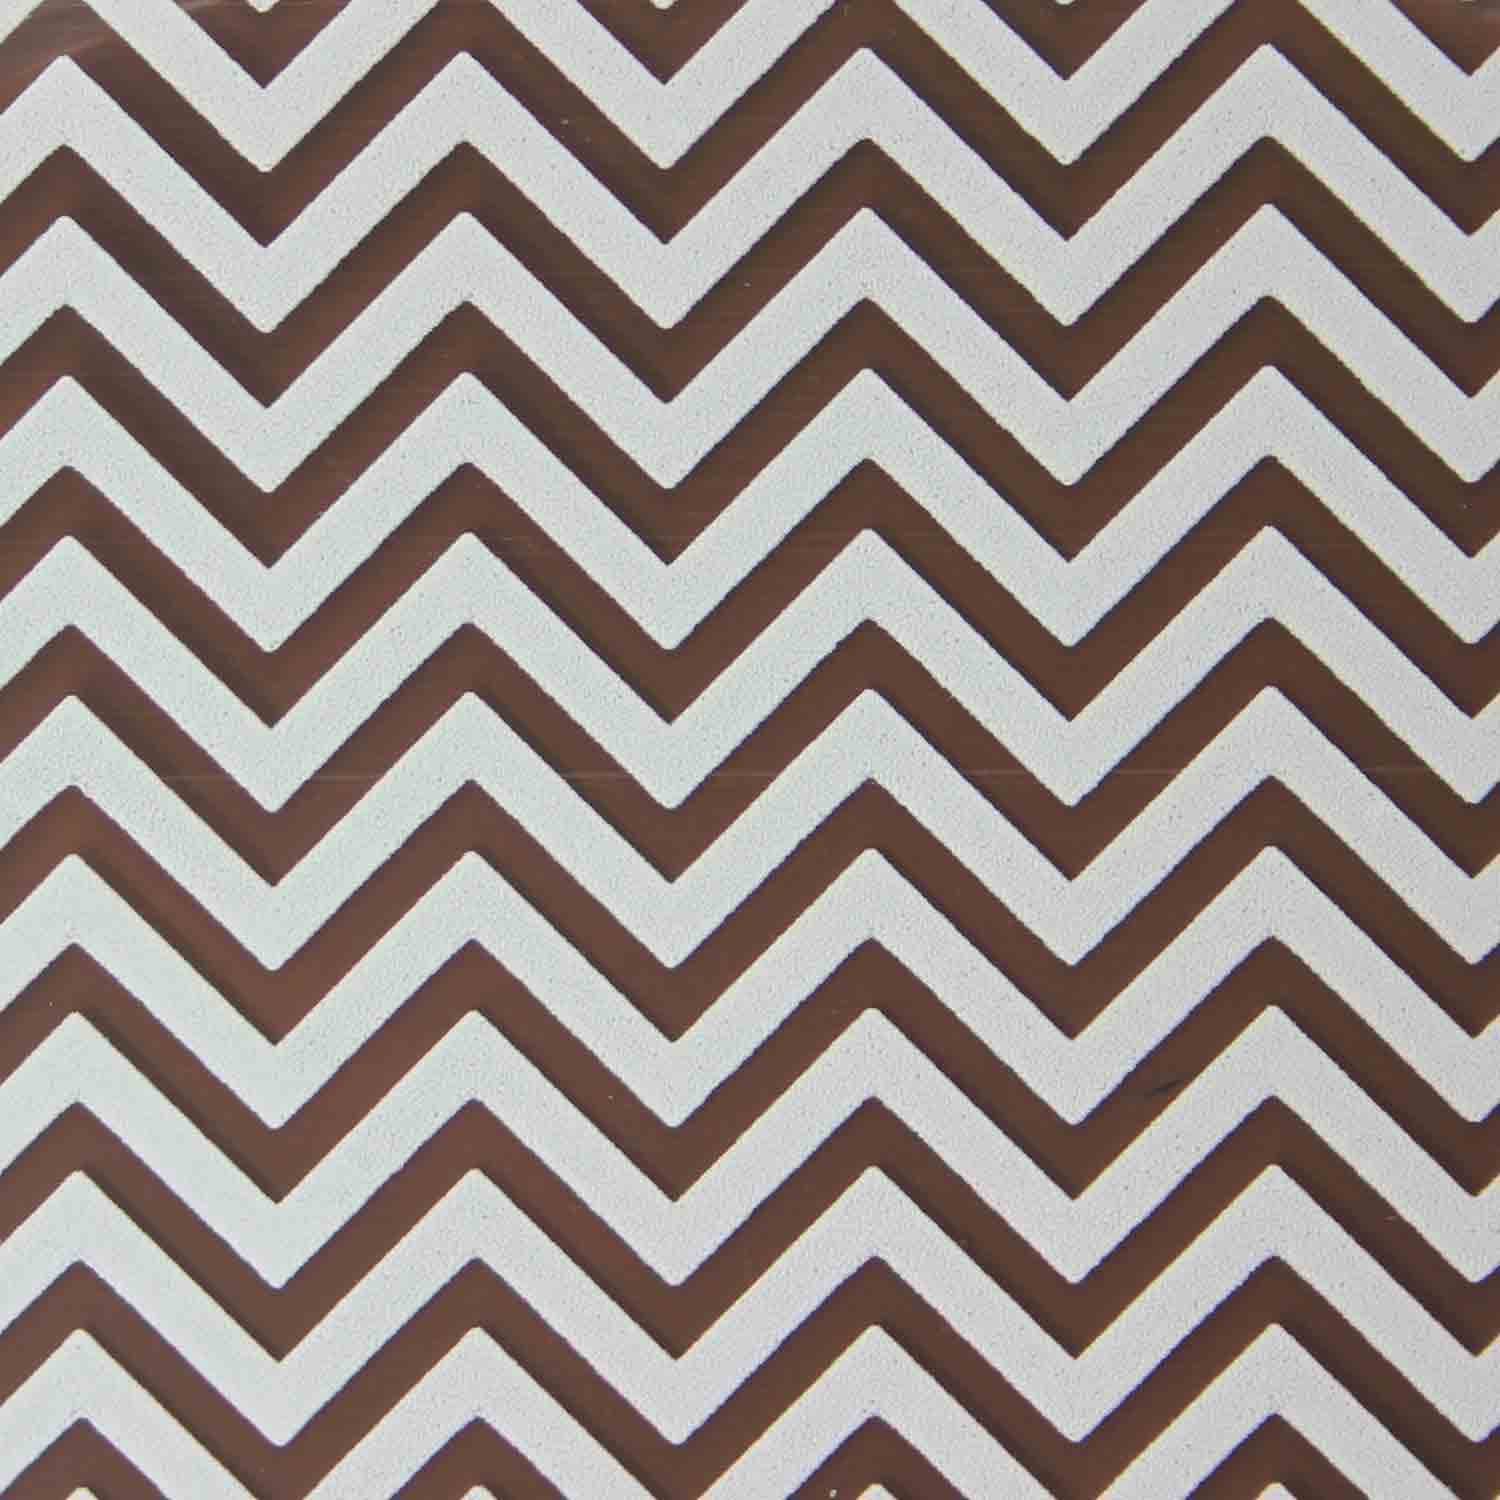 Chocolate Transfer Sheet - White Chevron